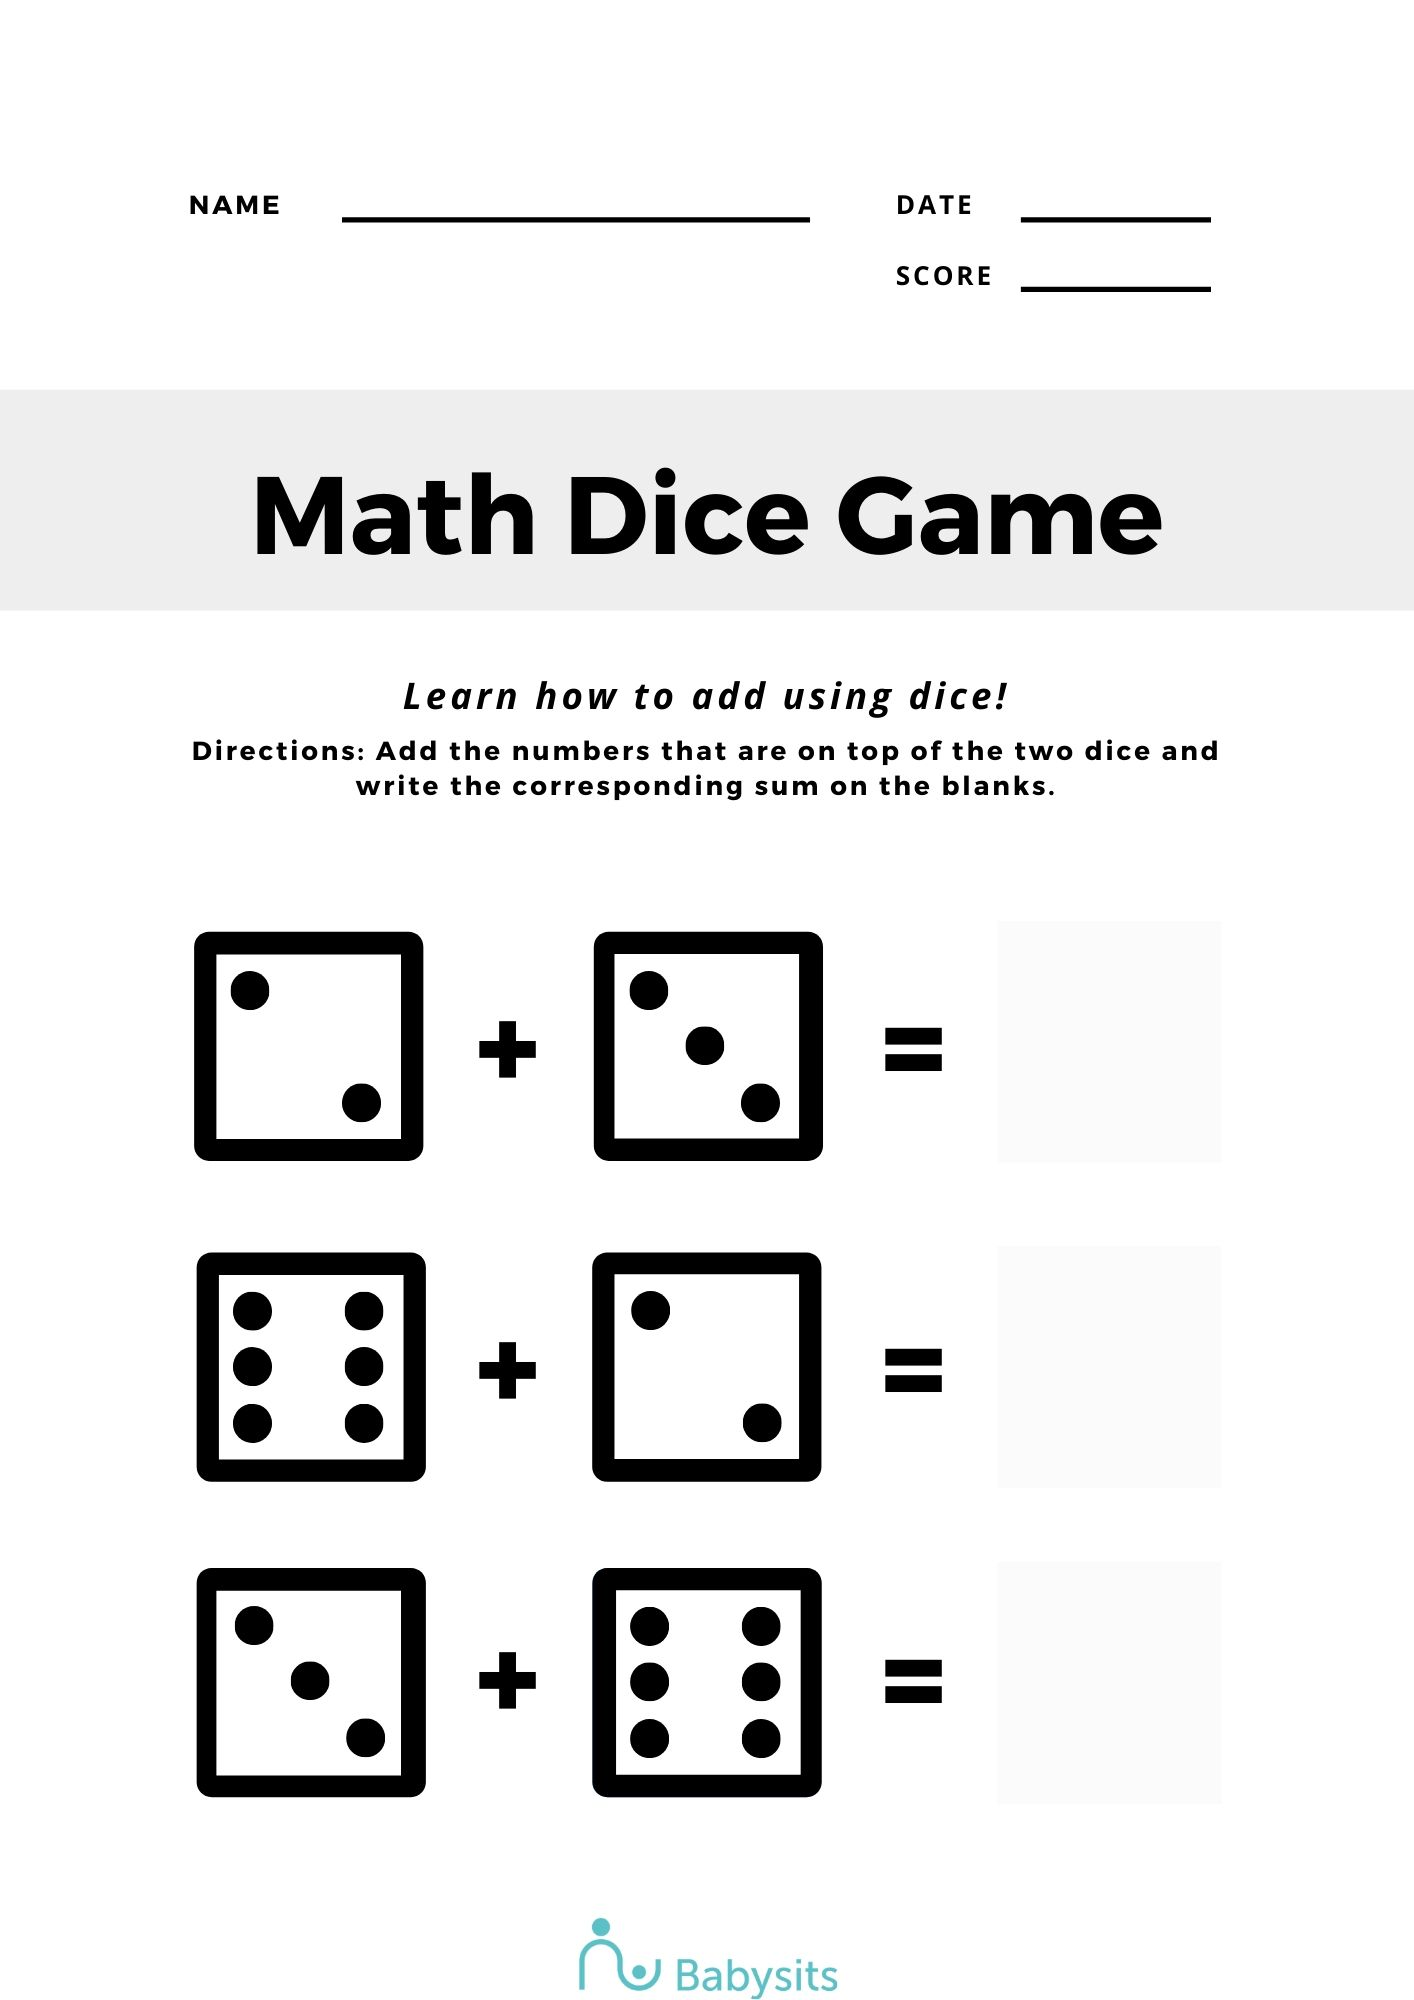 Maths activity sheet